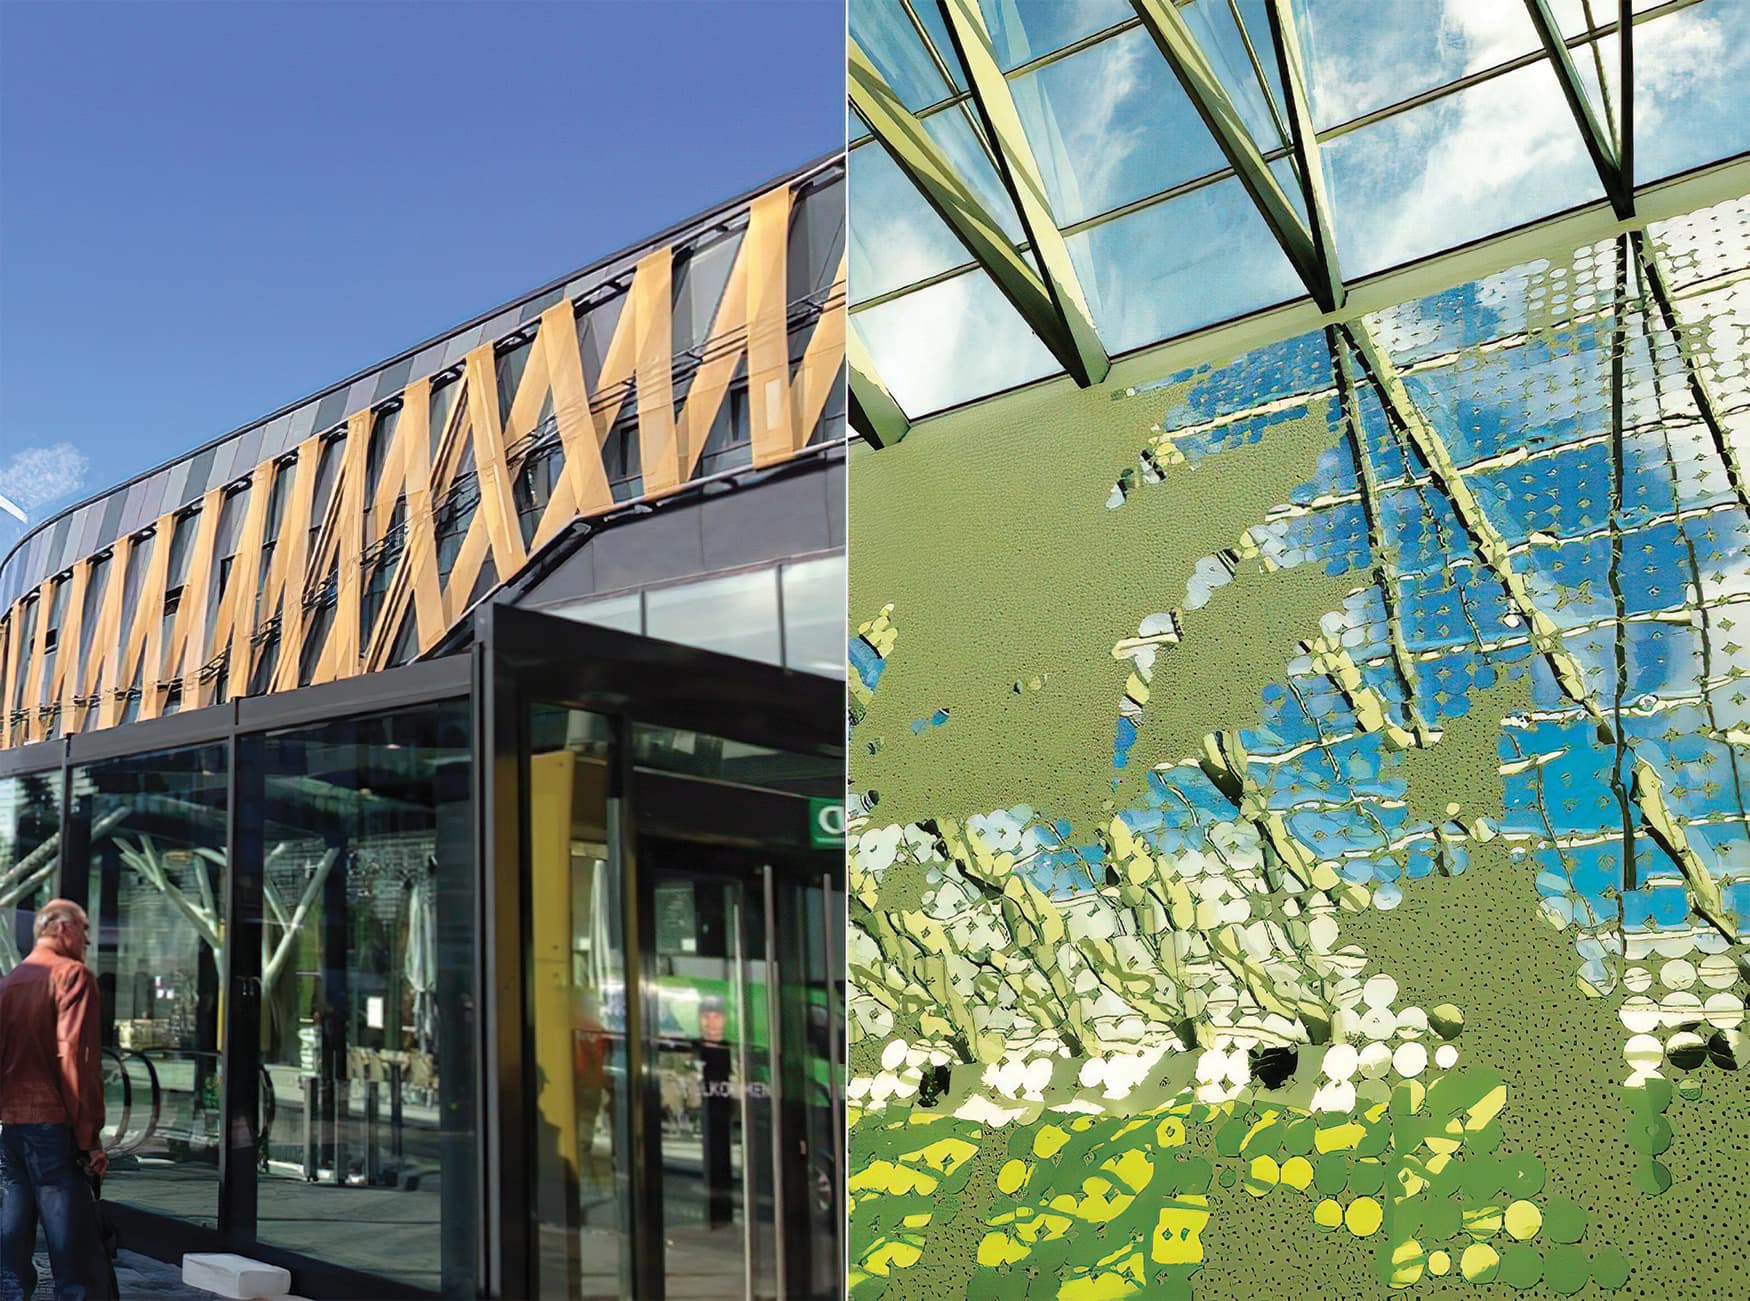 Hofgarten, a retail project in Solingen Germany, environmental graphic design and architectural design